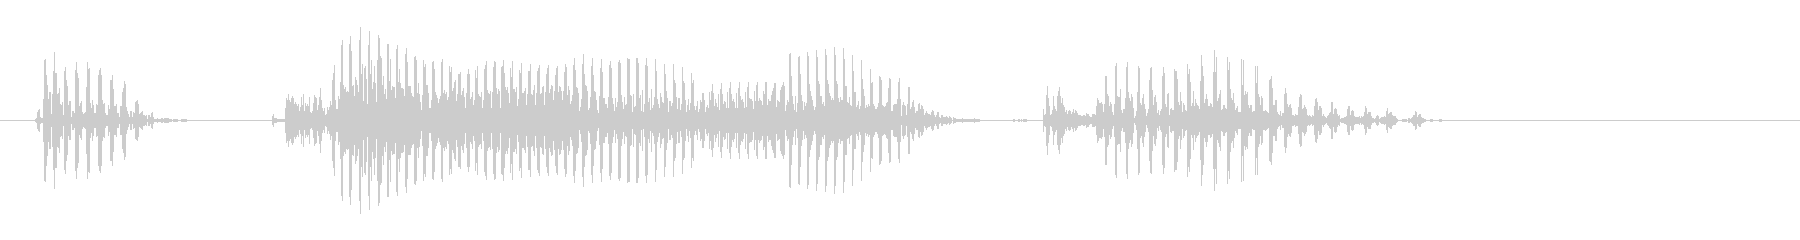 Okayama Prefecture's unreproduced waveform